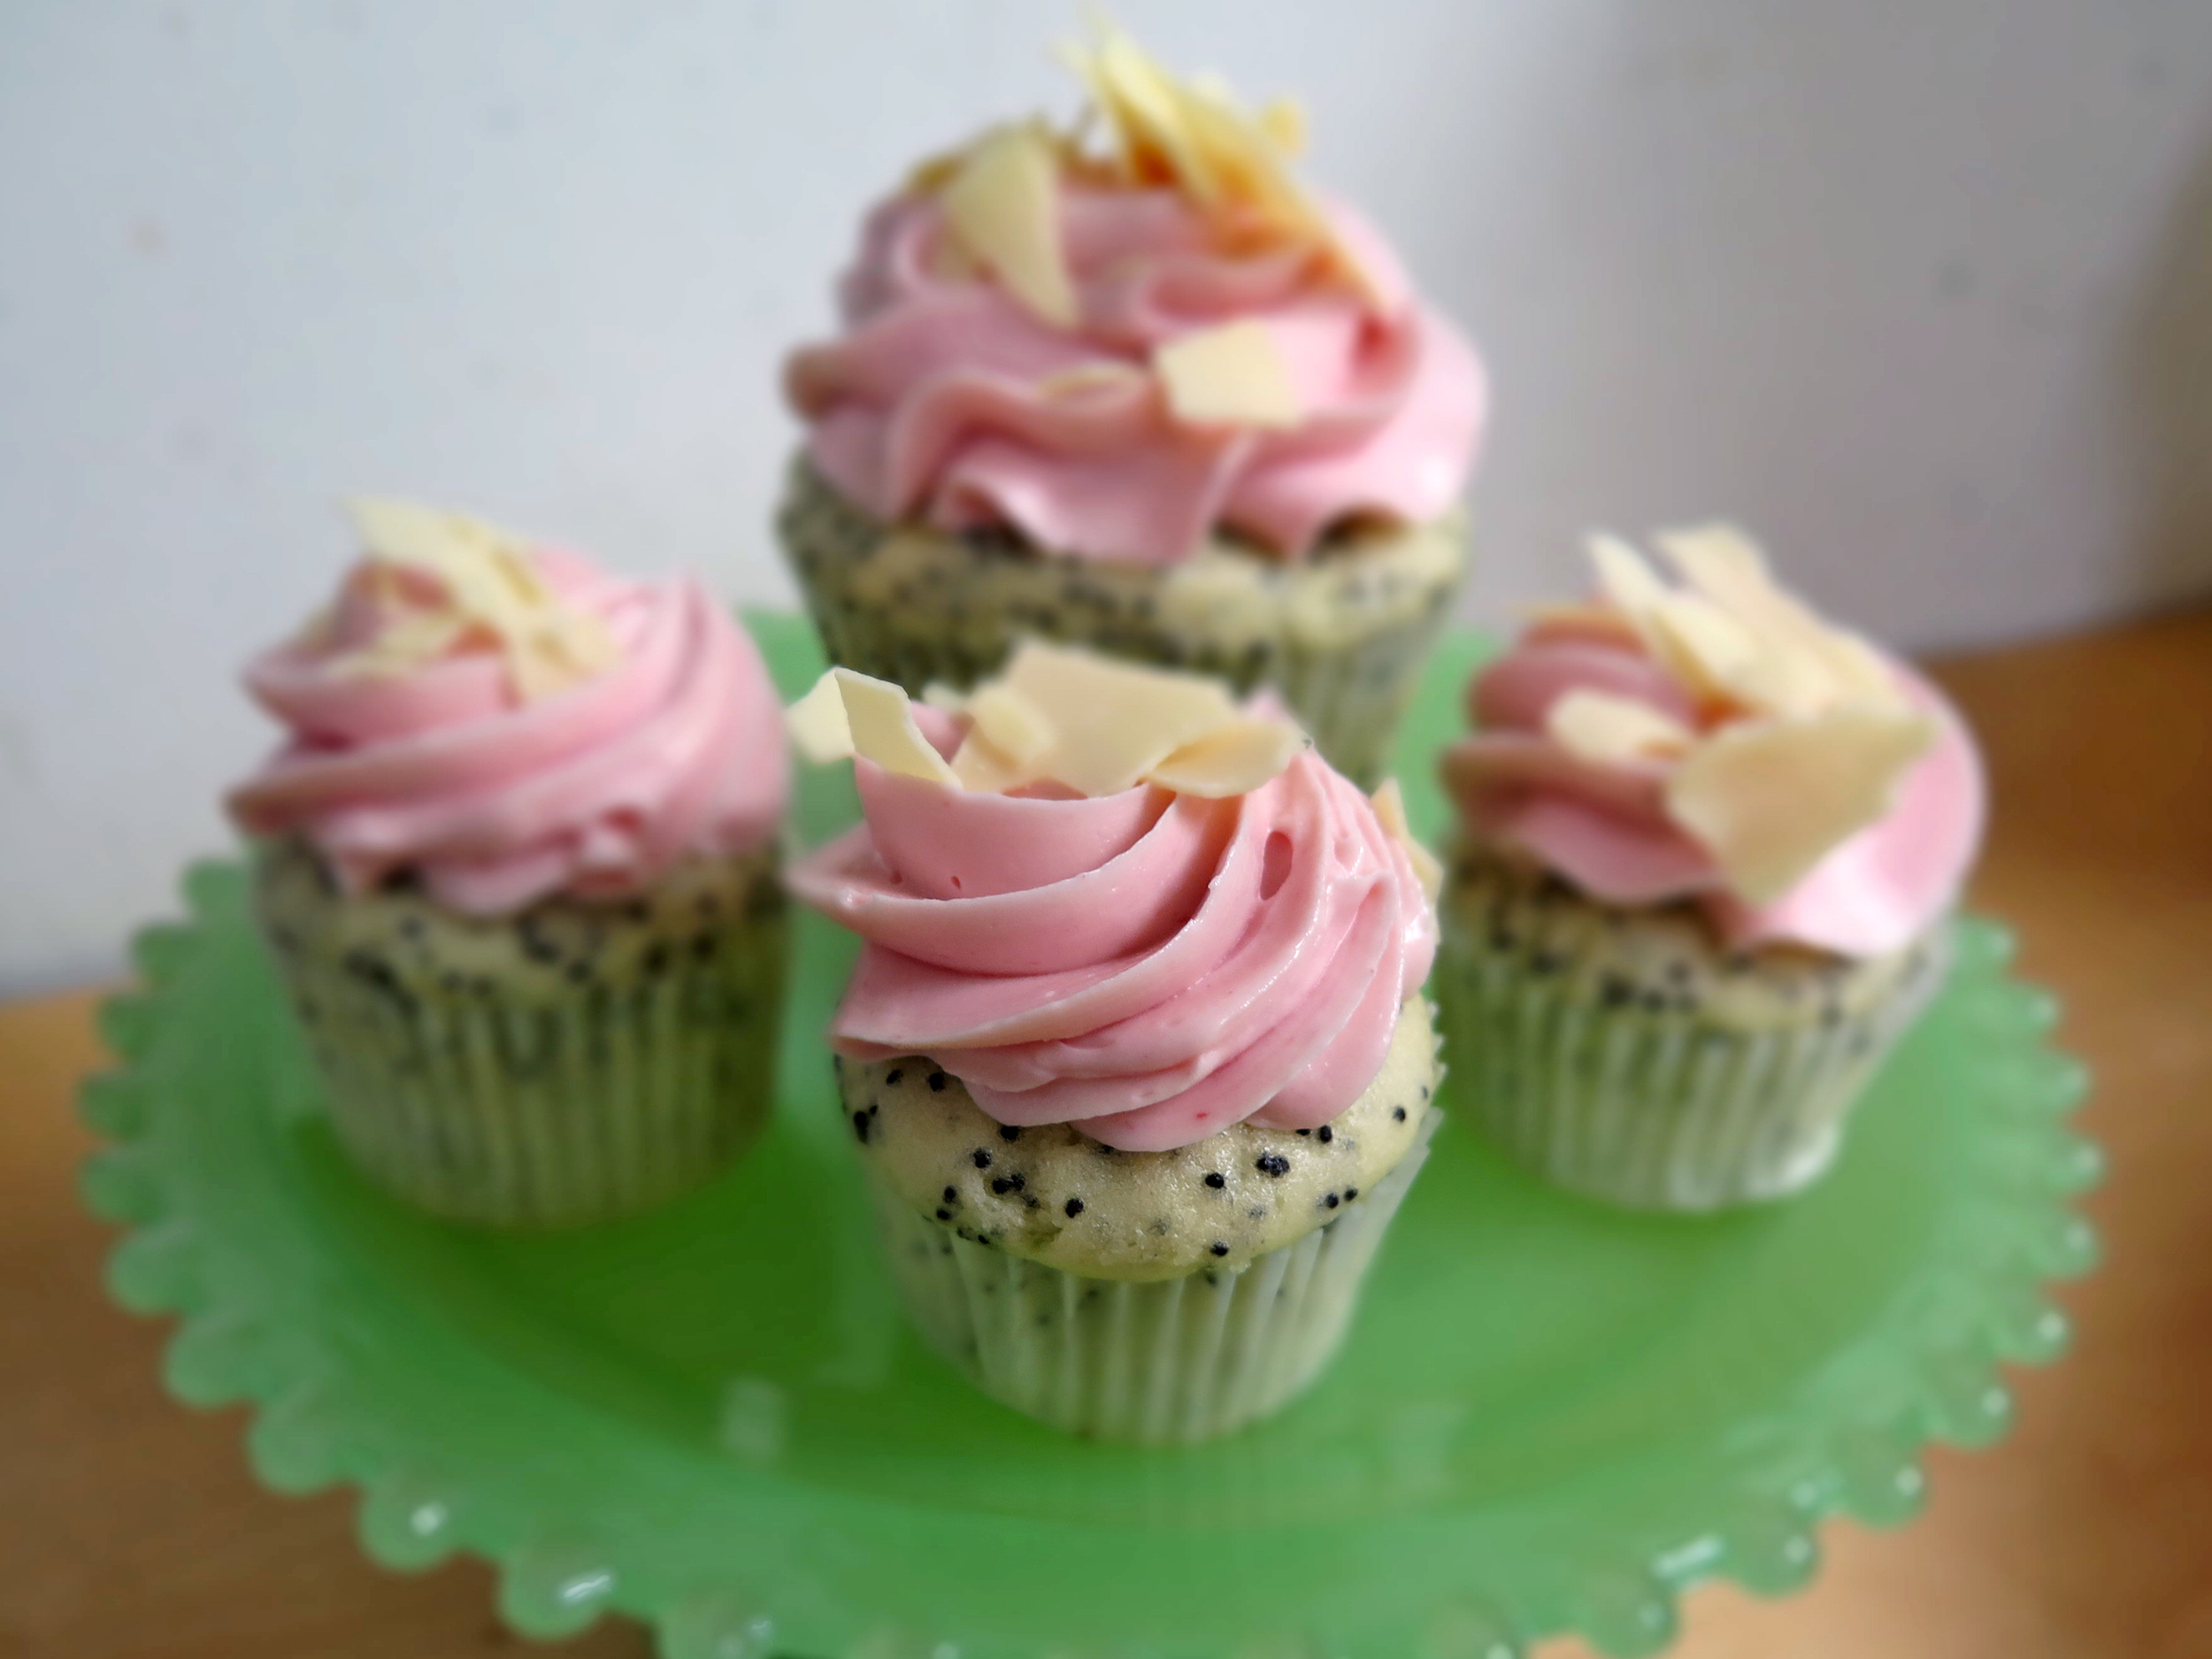 Mini Lemon and Raspberry Cupcakes